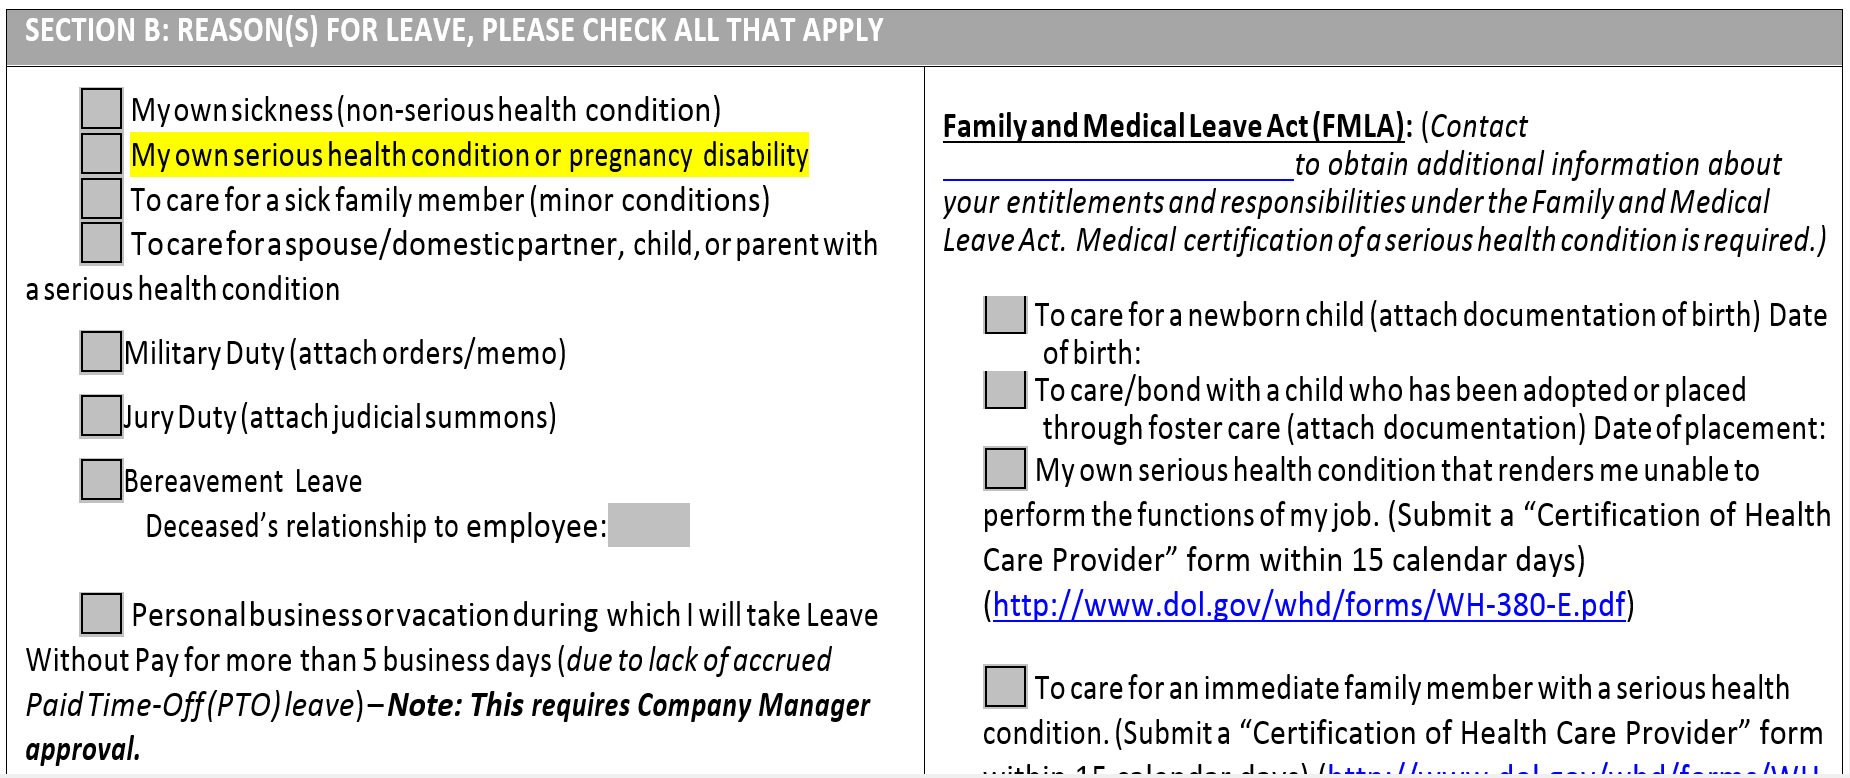 Fmla return to work certification form choice image form example fmla certification of health care provider form images form no fmla leave without pay tyjen conley xflitez Gallery